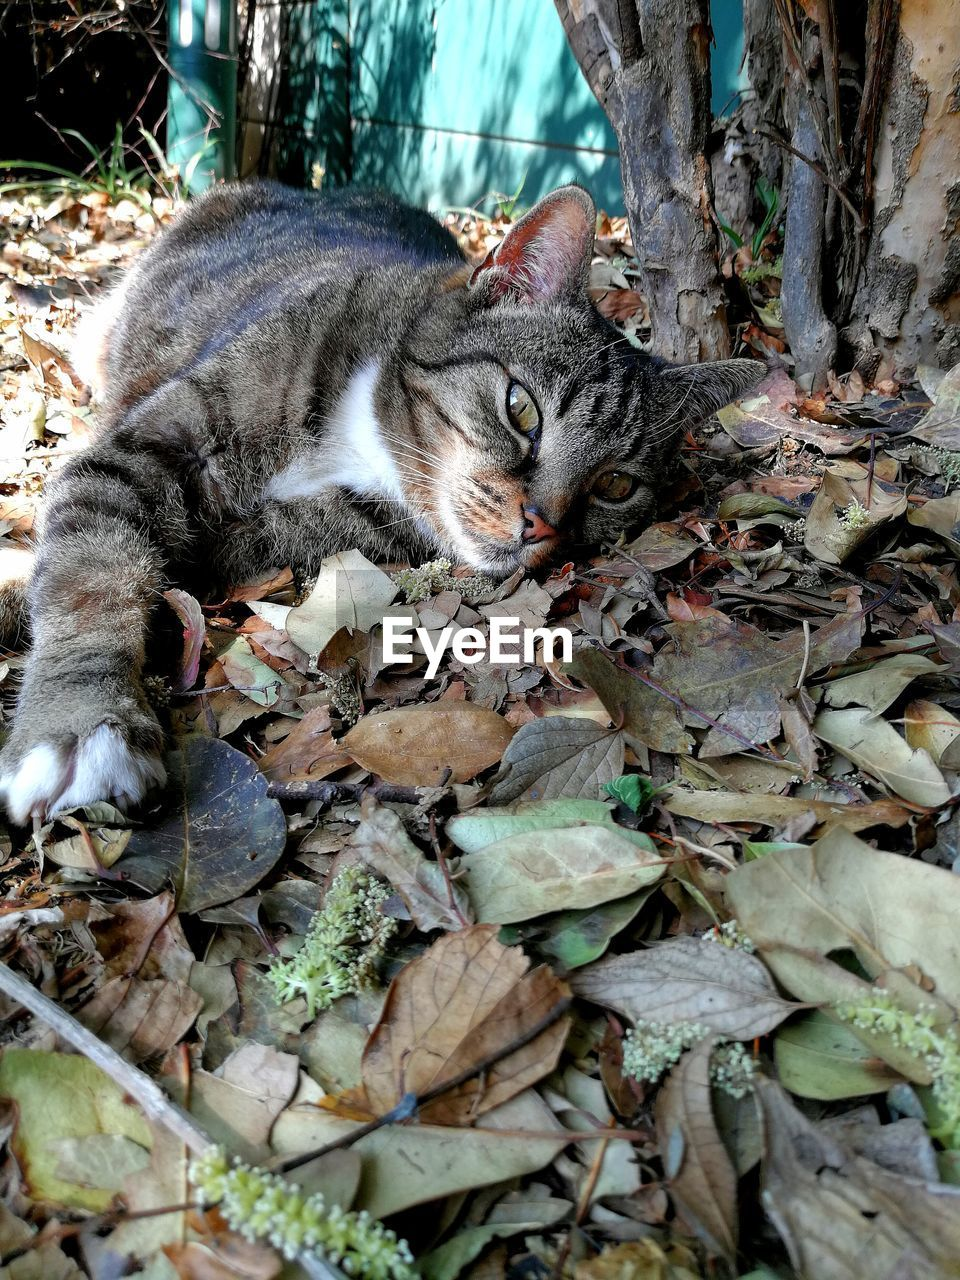 cat, domestic cat, feline, animal themes, mammal, domestic, pets, domestic animals, animal, plant part, one animal, leaf, vertebrate, no people, nature, relaxation, day, dry, portrait, looking at camera, whisker, leaves, animal head, tabby